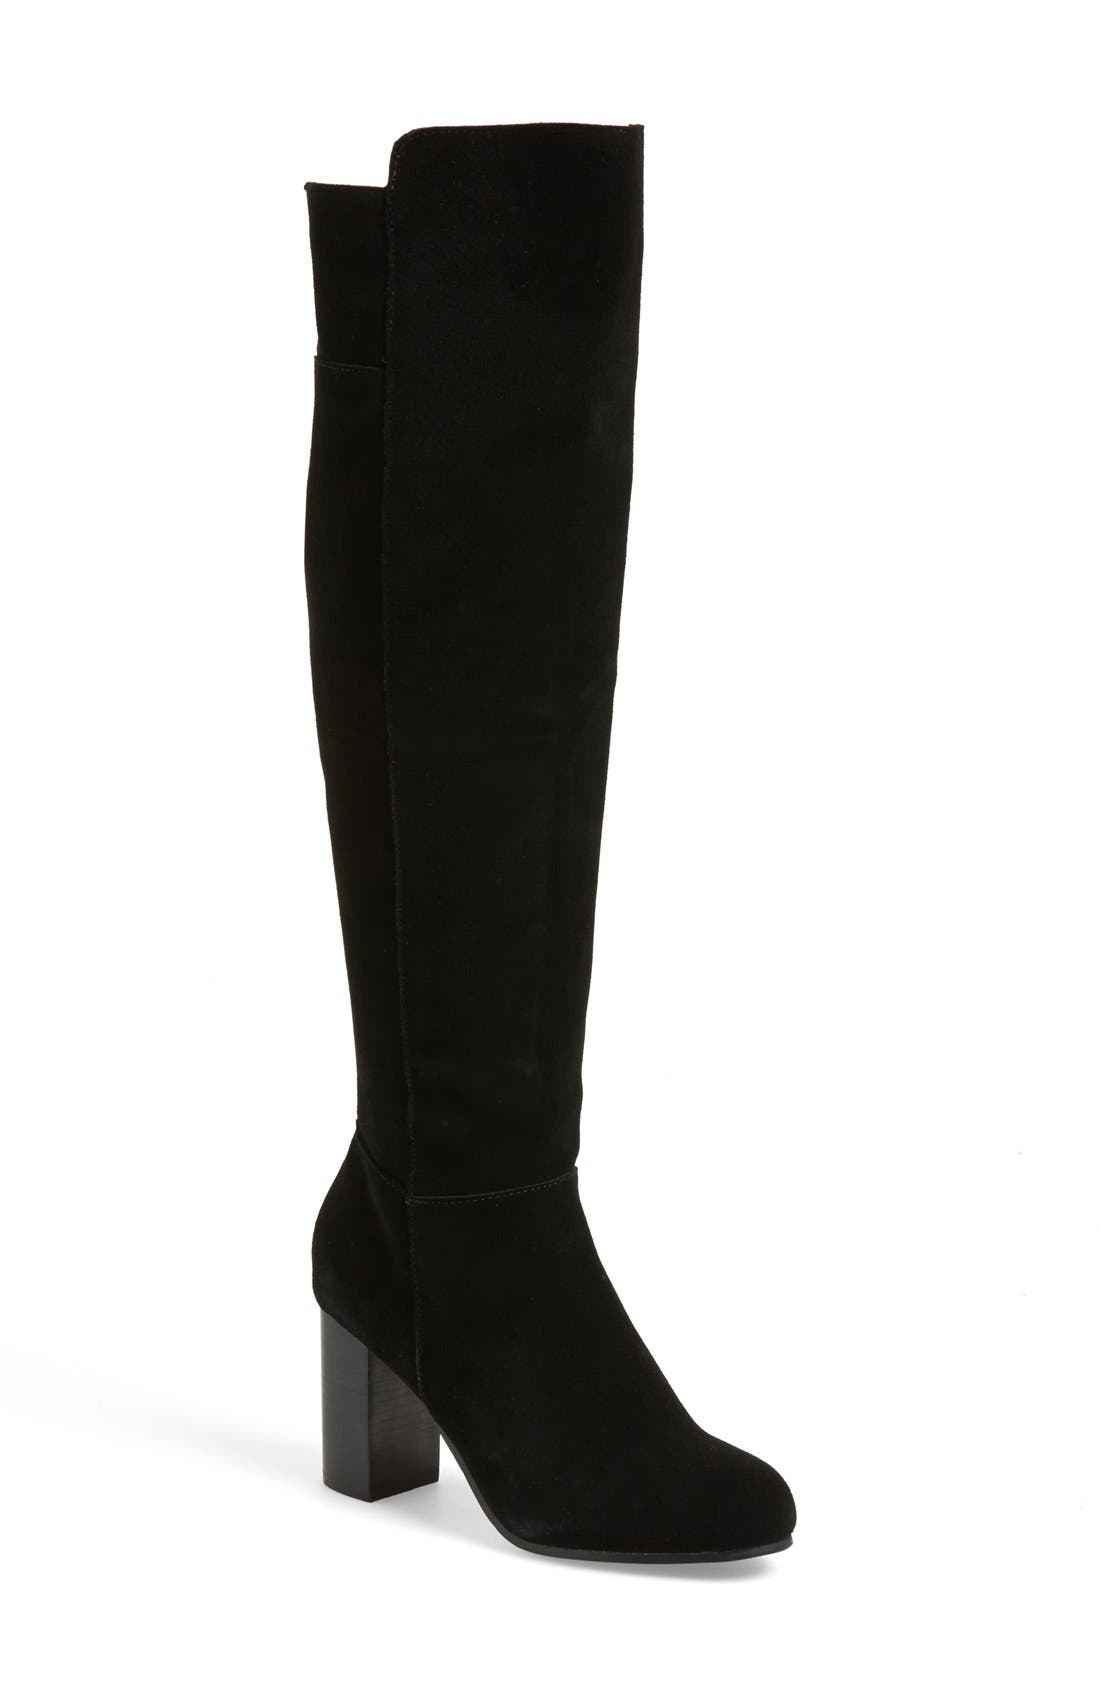 'Ginette' Over the Knee Boot,                             Main thumbnail 1, color,                             001